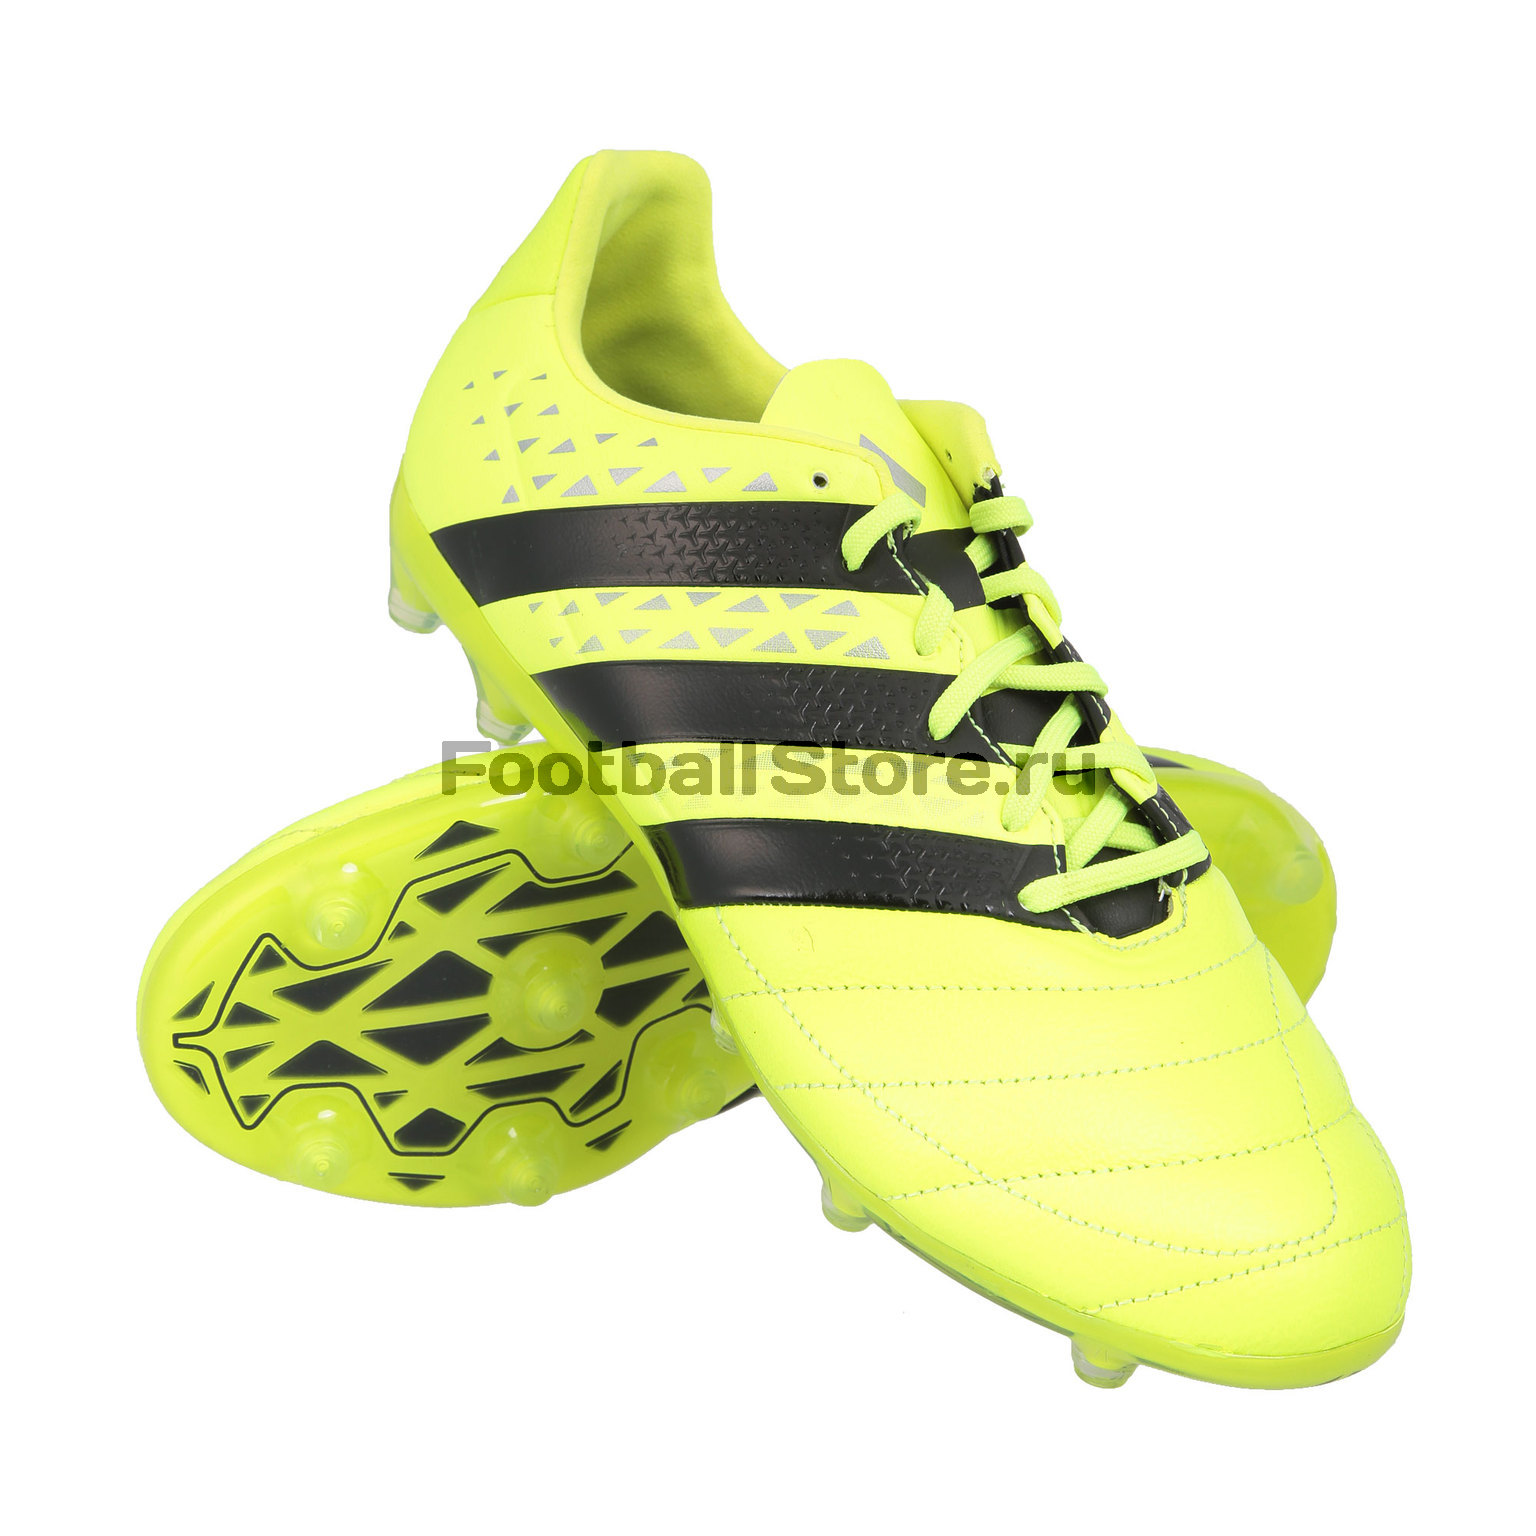 Бутсы Adidas Ace 16.2 FG Leather S31916 игровые бутсы adidas бутсы adidas ace 17 1 fg by2459